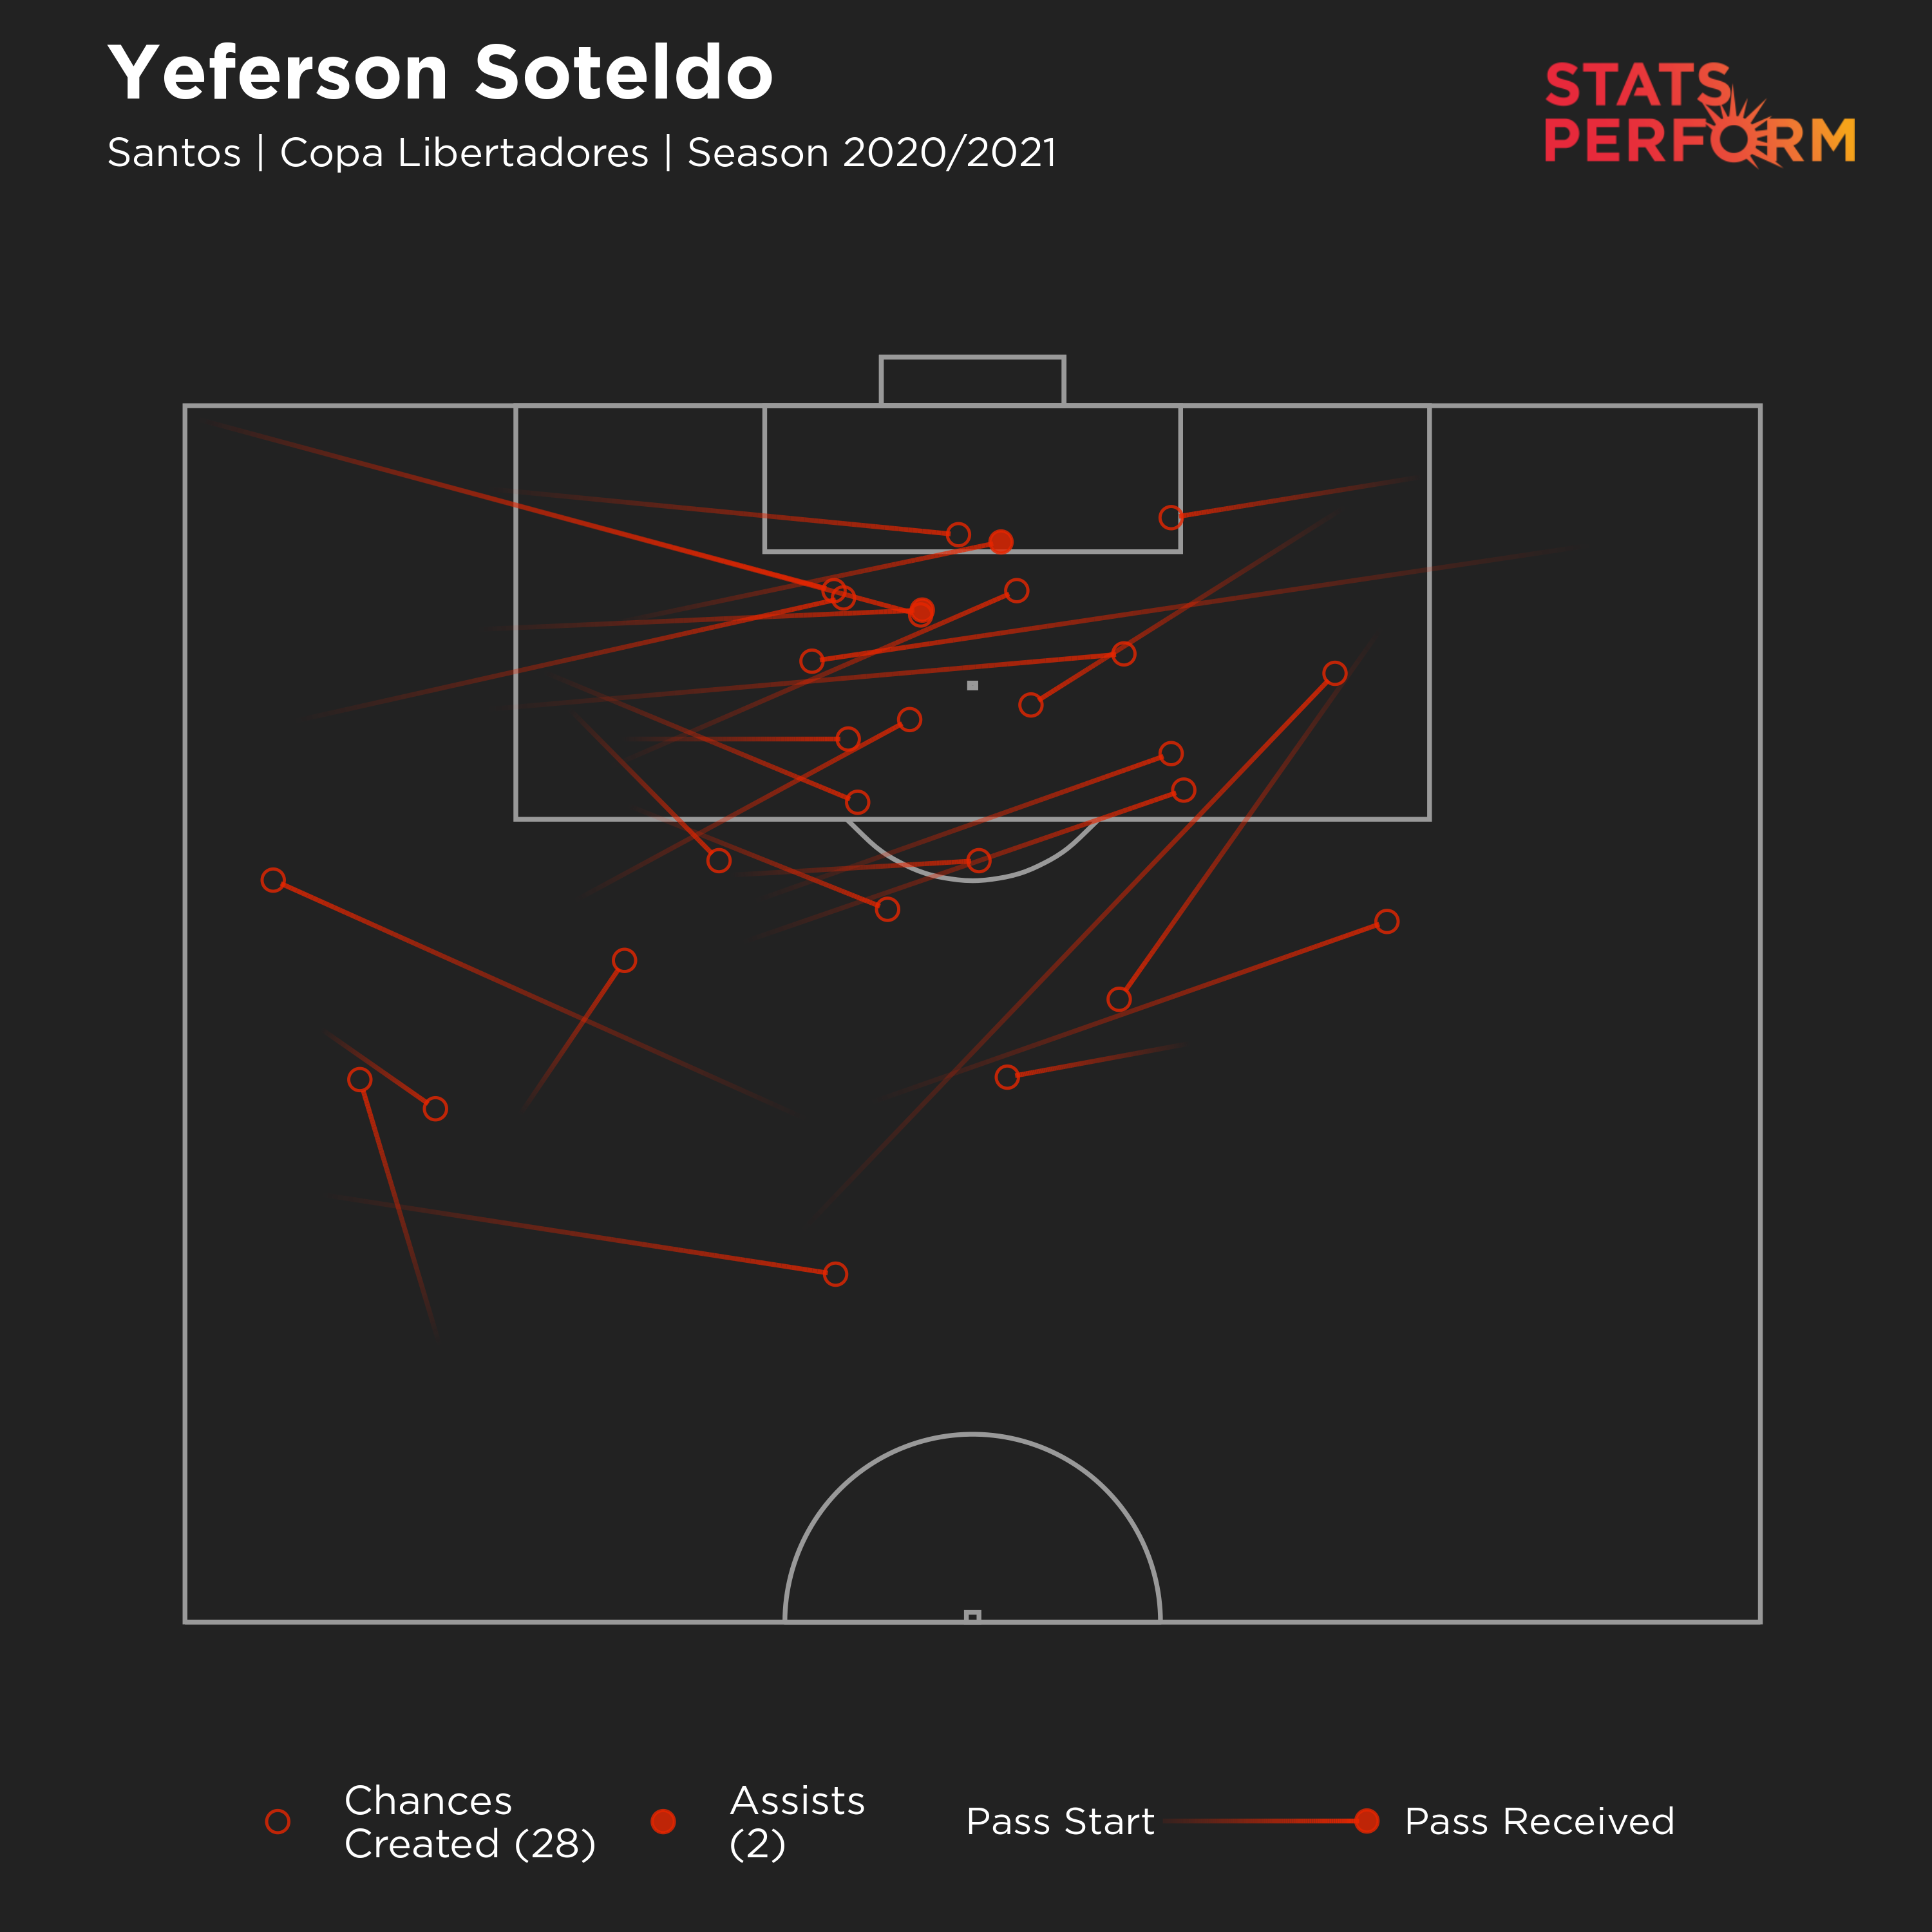 Yeferson Soteldo has created the third most chances in the Copa Libertadores this season